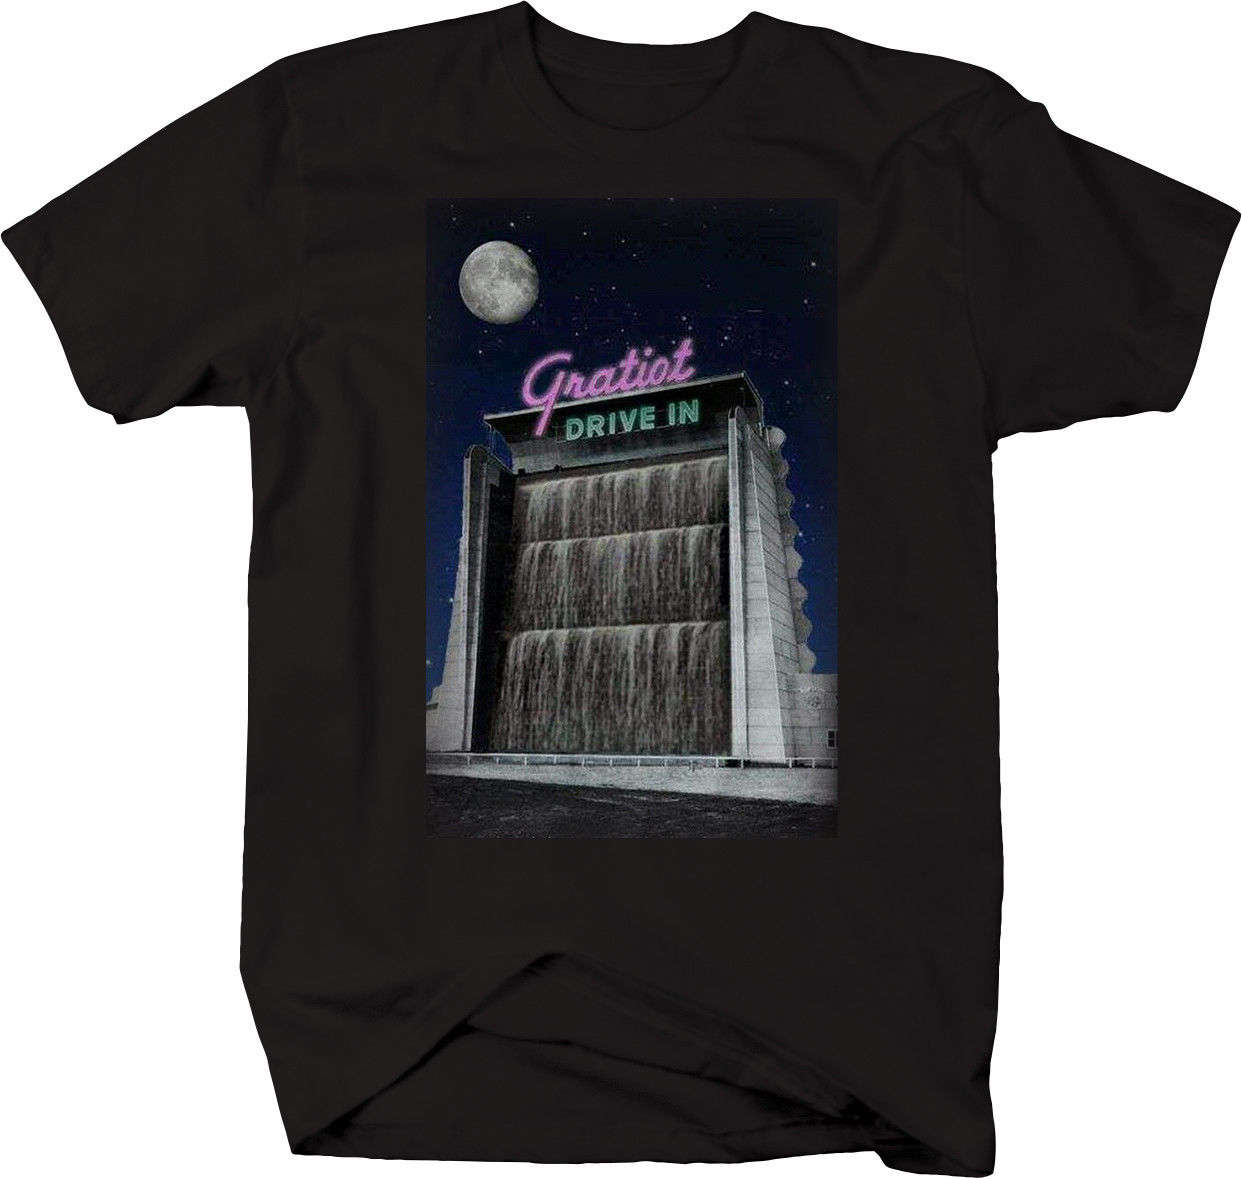 Gratiot Classic Drive In Movie Theatre Michigan Vintage Tshirt ...